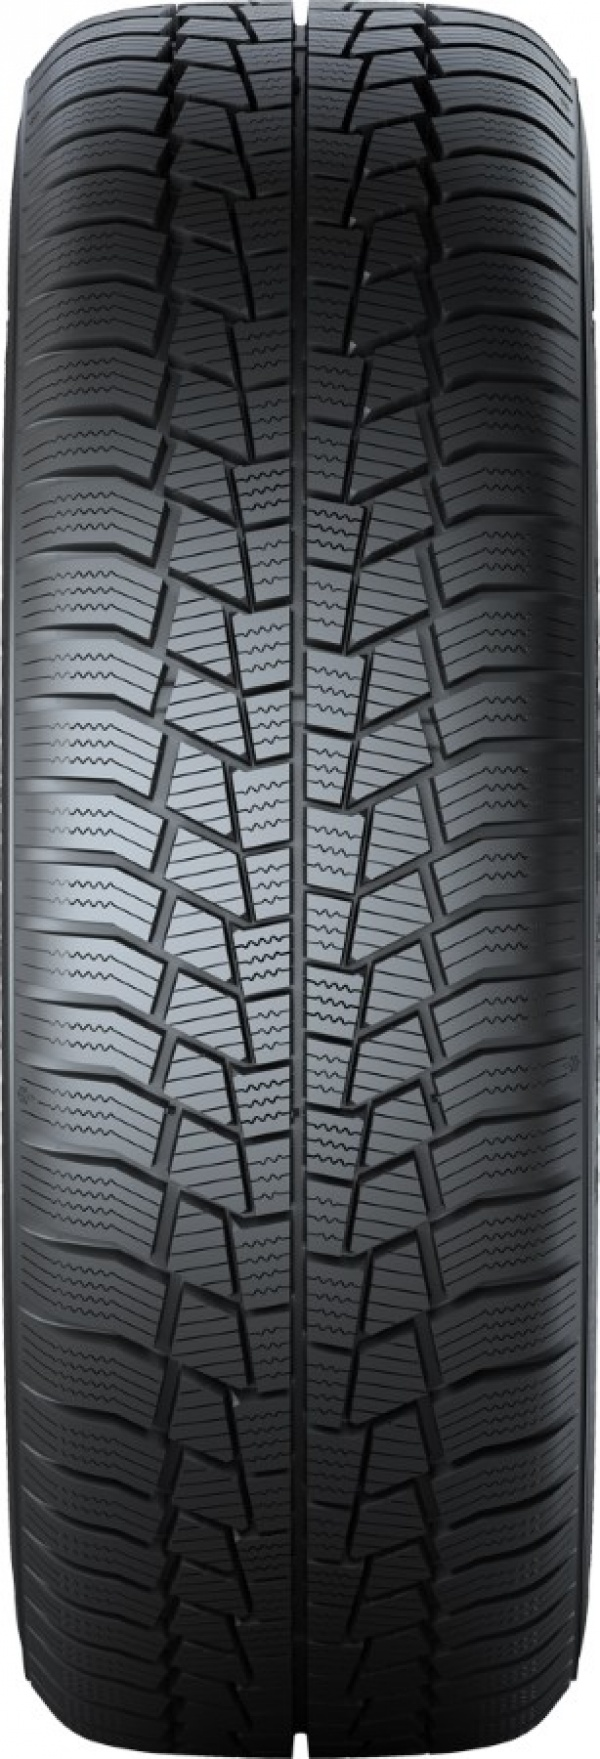 Gislaved Euro Frost 6 235/60 R18 107V  не шип